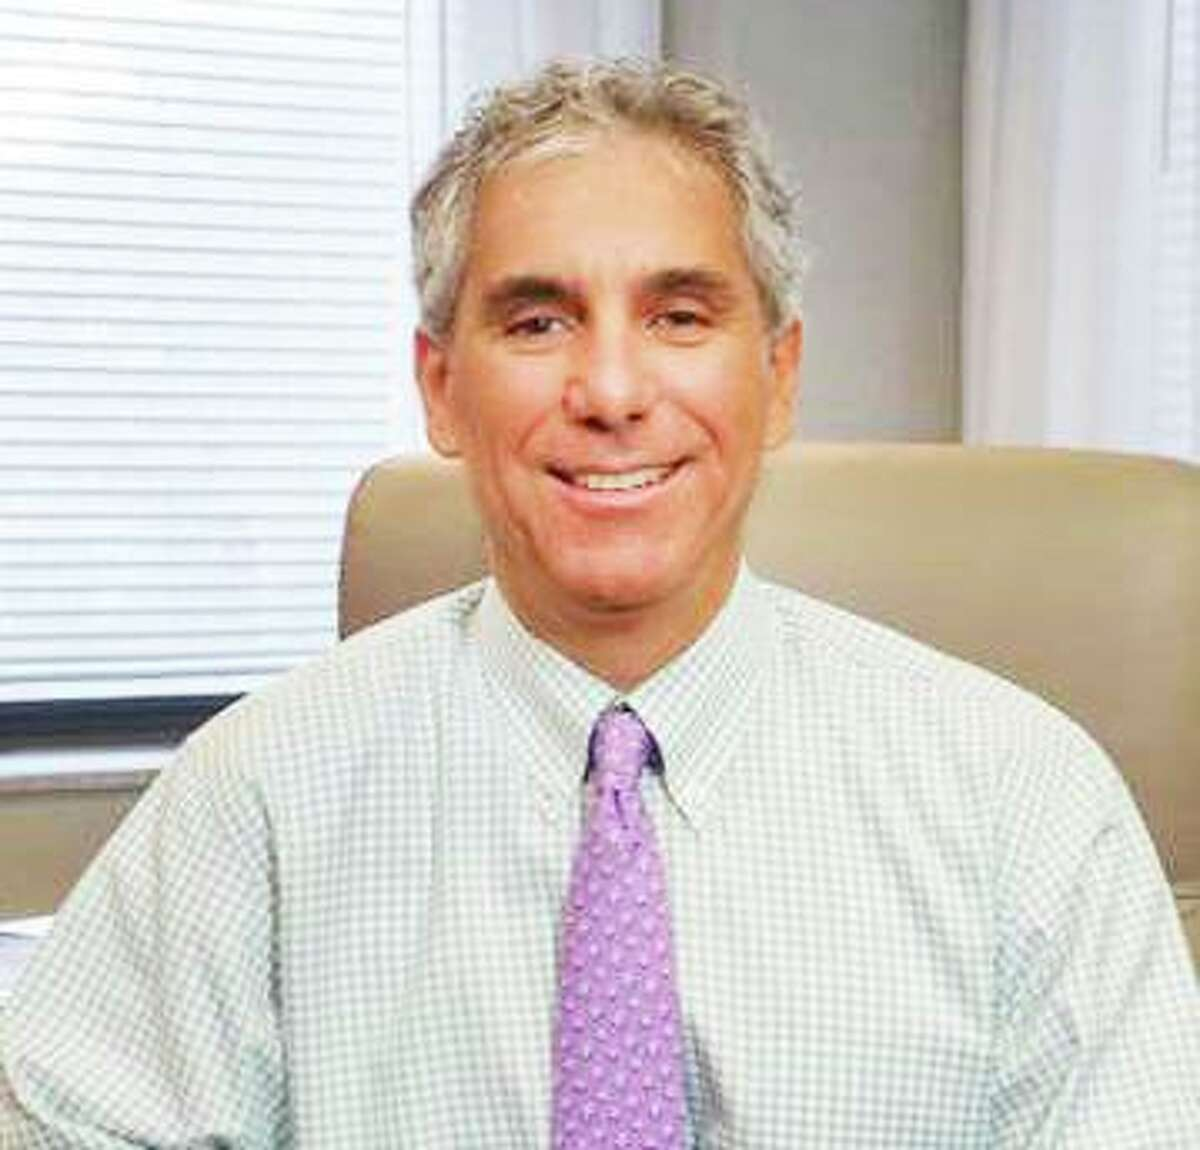 Vincent Capece of Middlesex Health is the honorary chair of the upcoming Red Moon Fest event sponsored by the MxCC Foundation.